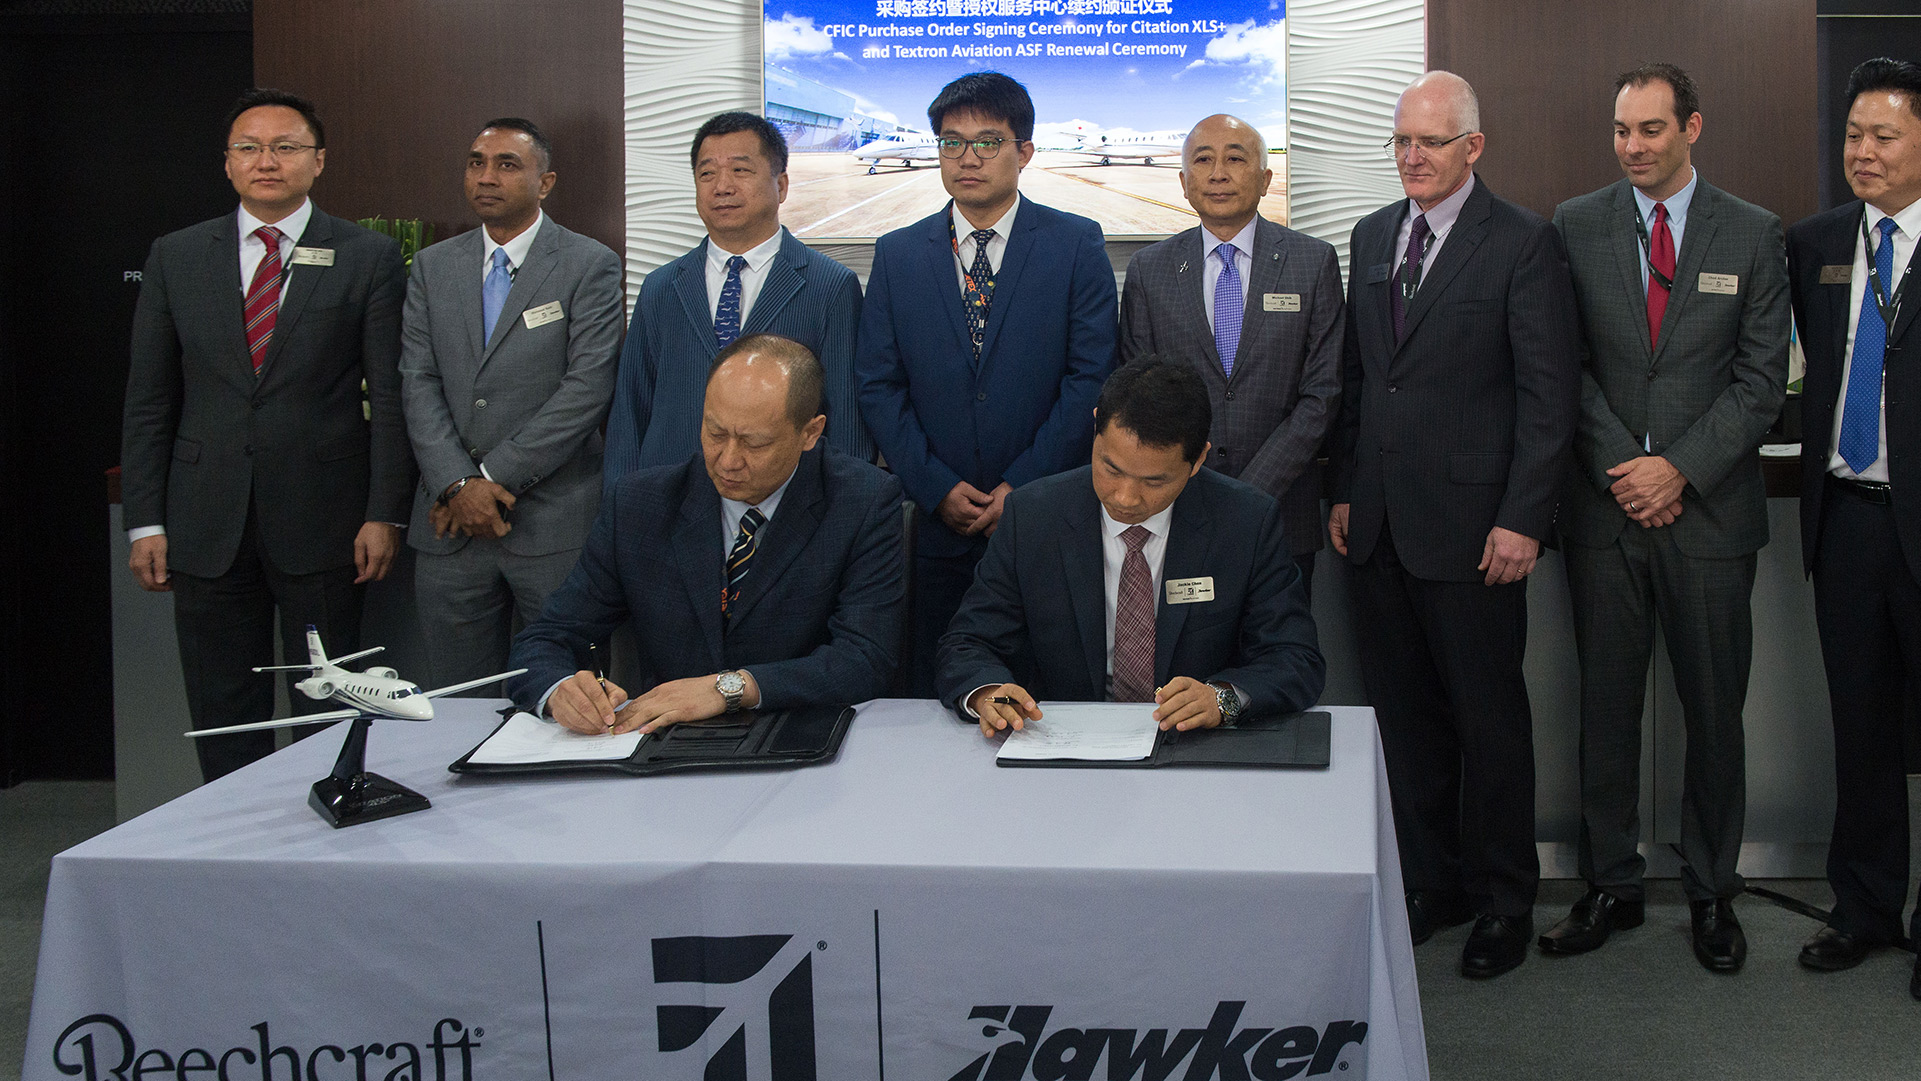 Textron Aviation Joint Venture receives order from CFIC for